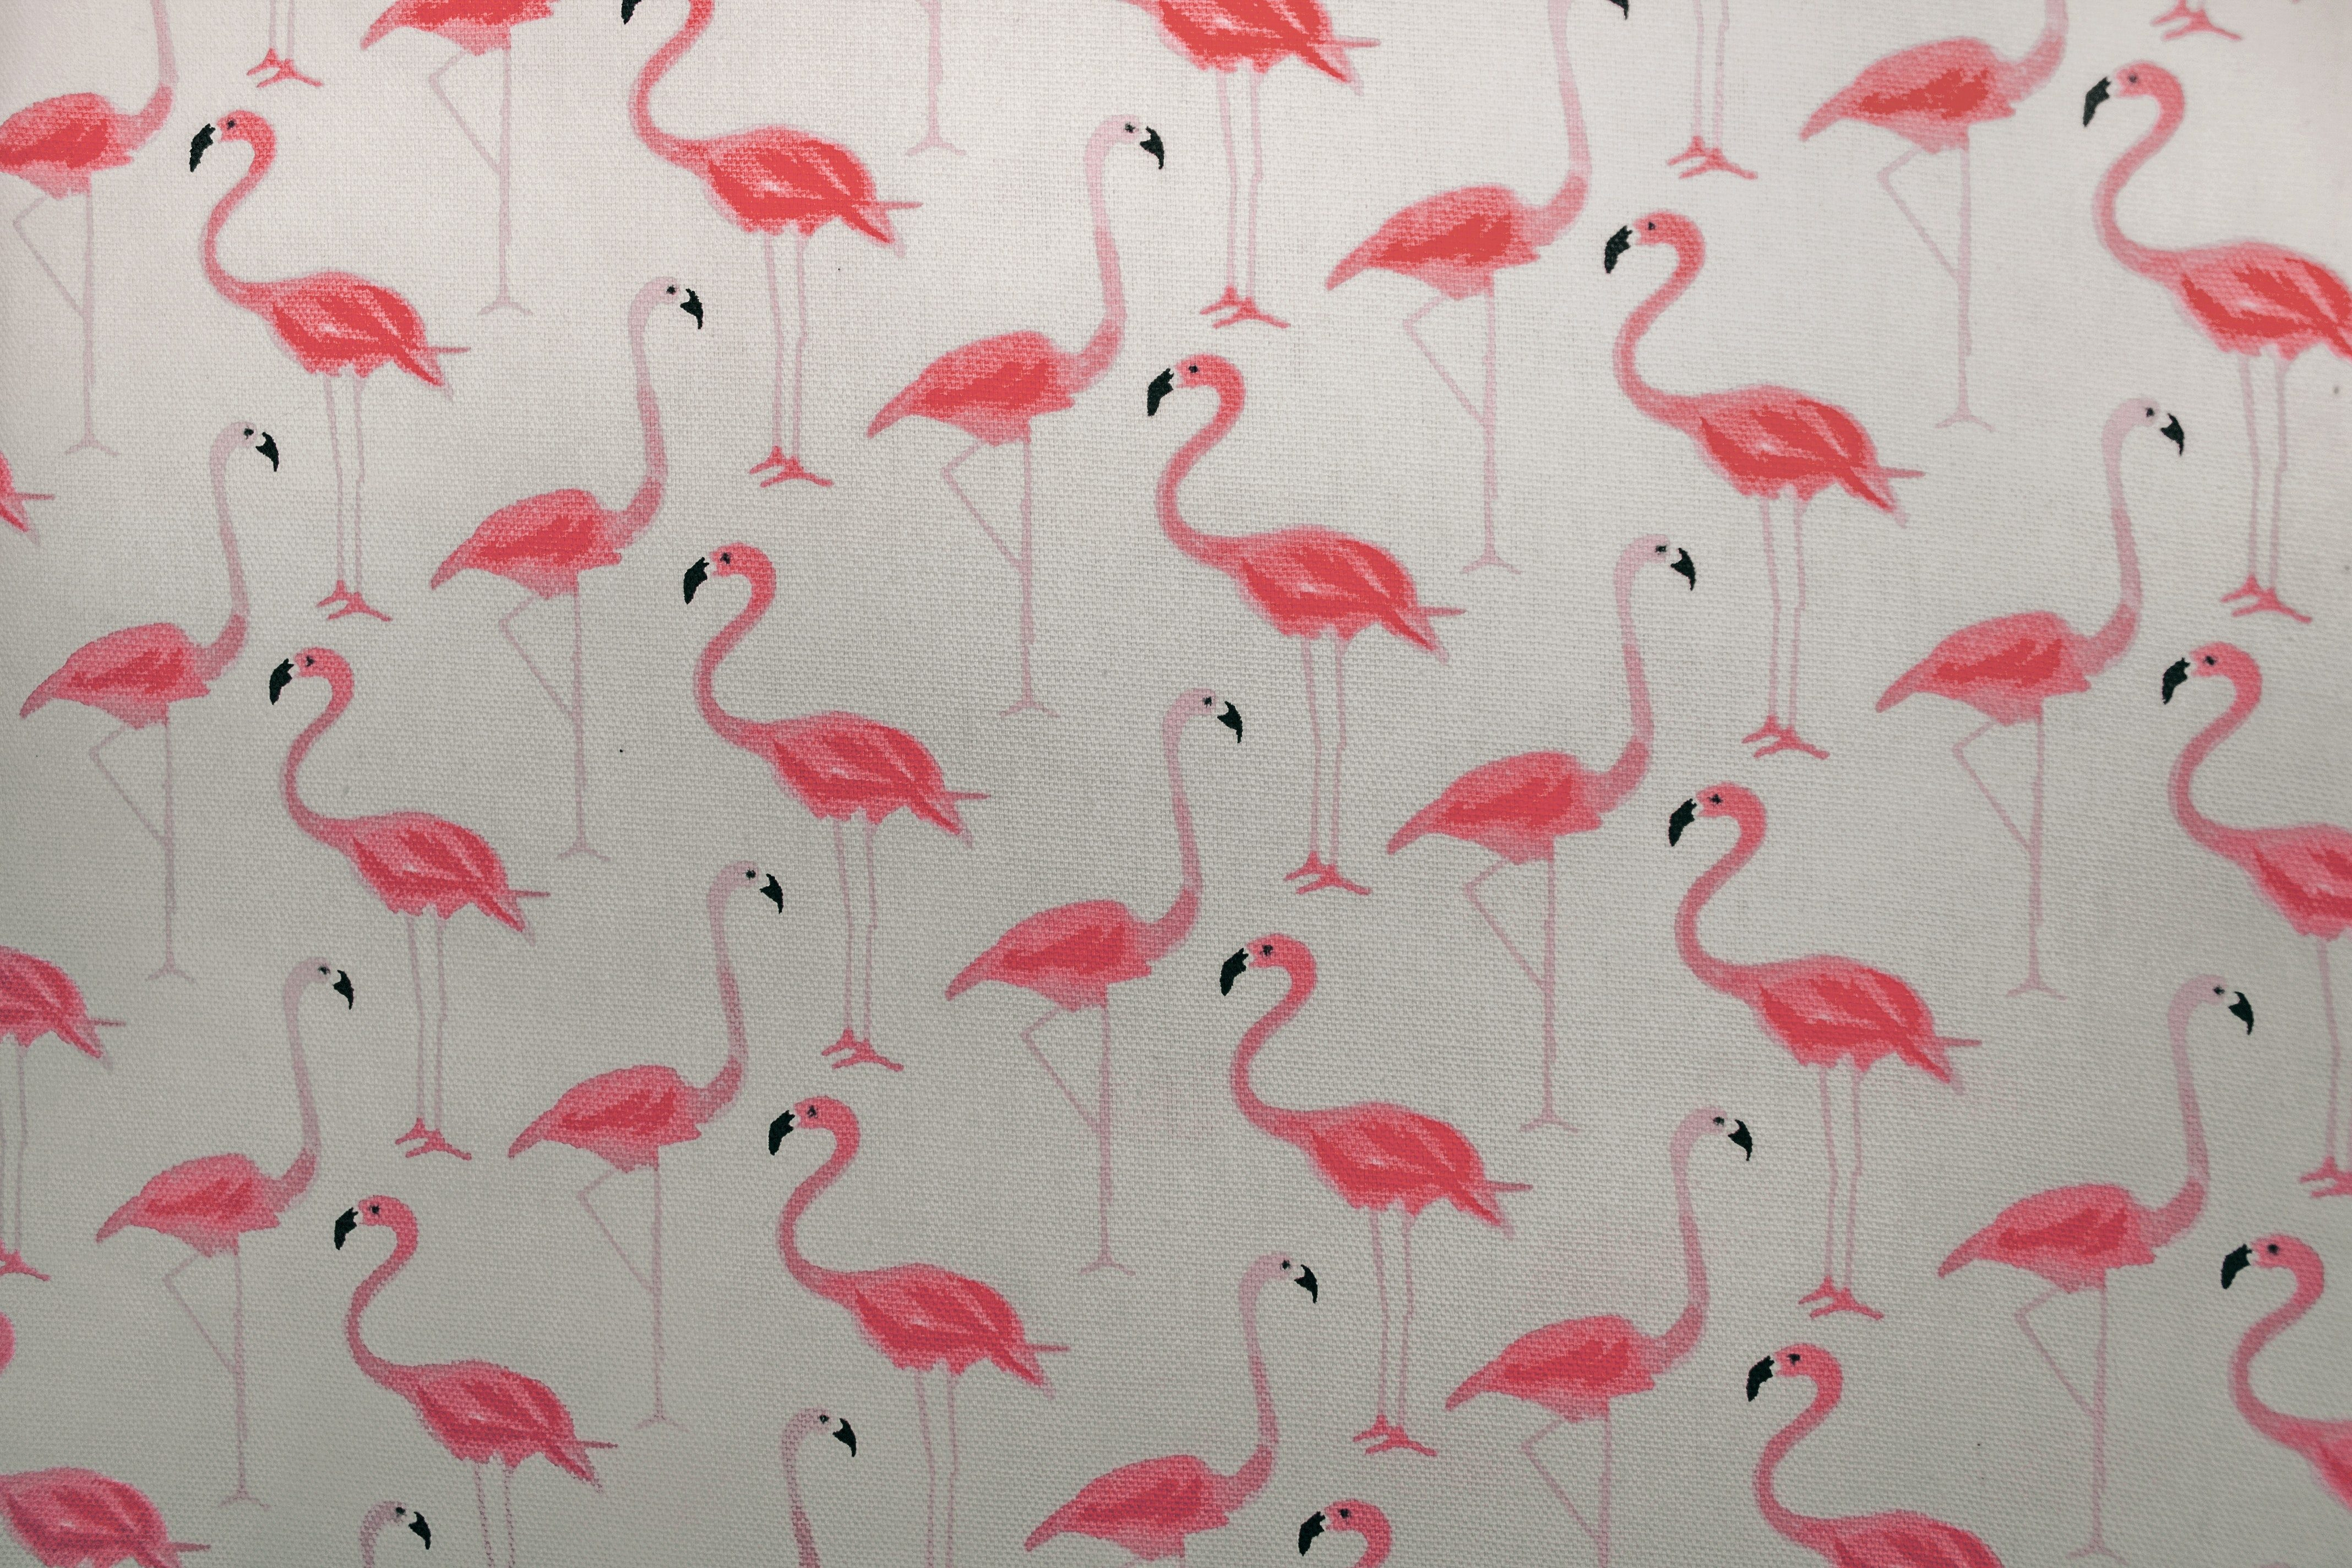 Flamingo fabric pattern